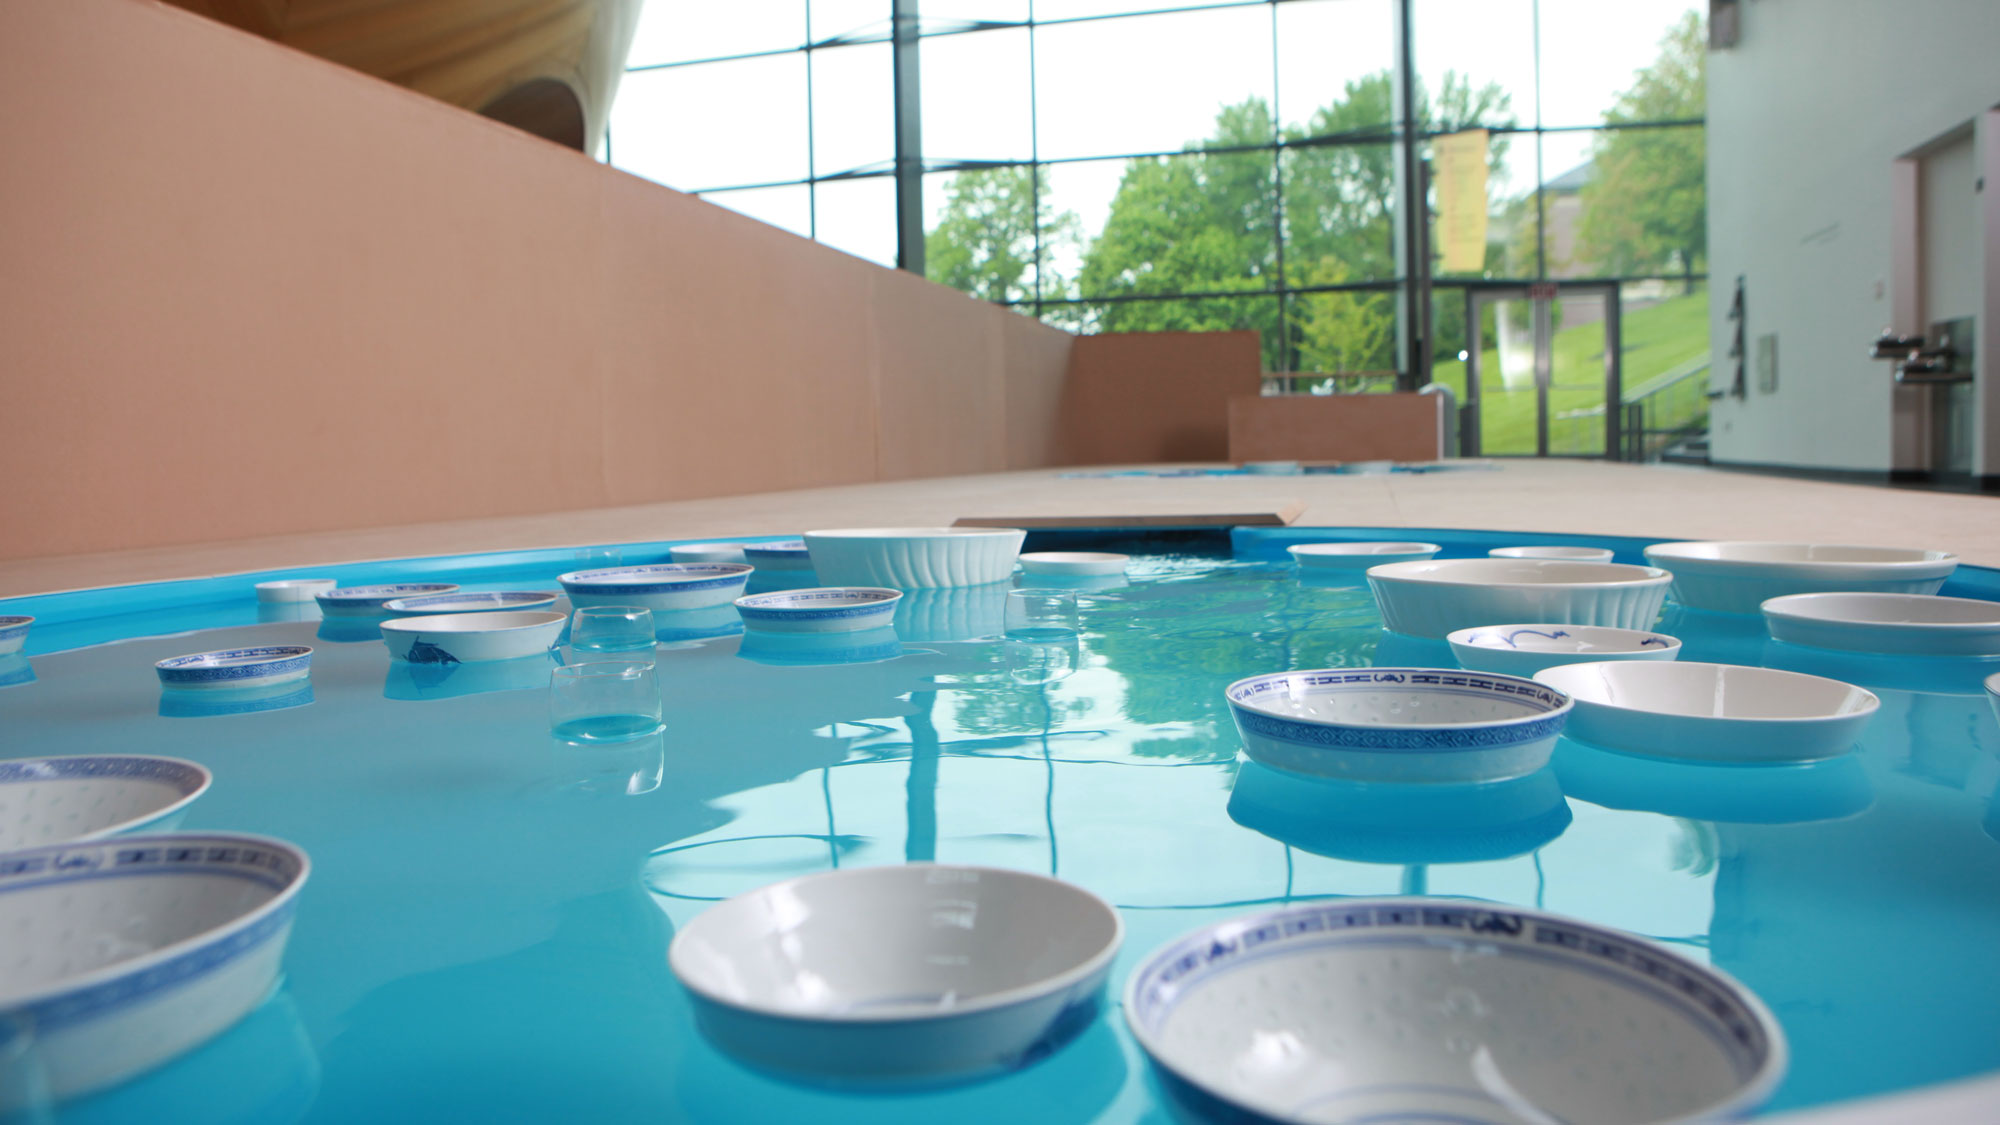 bowls floating in a pool on the mezzanine